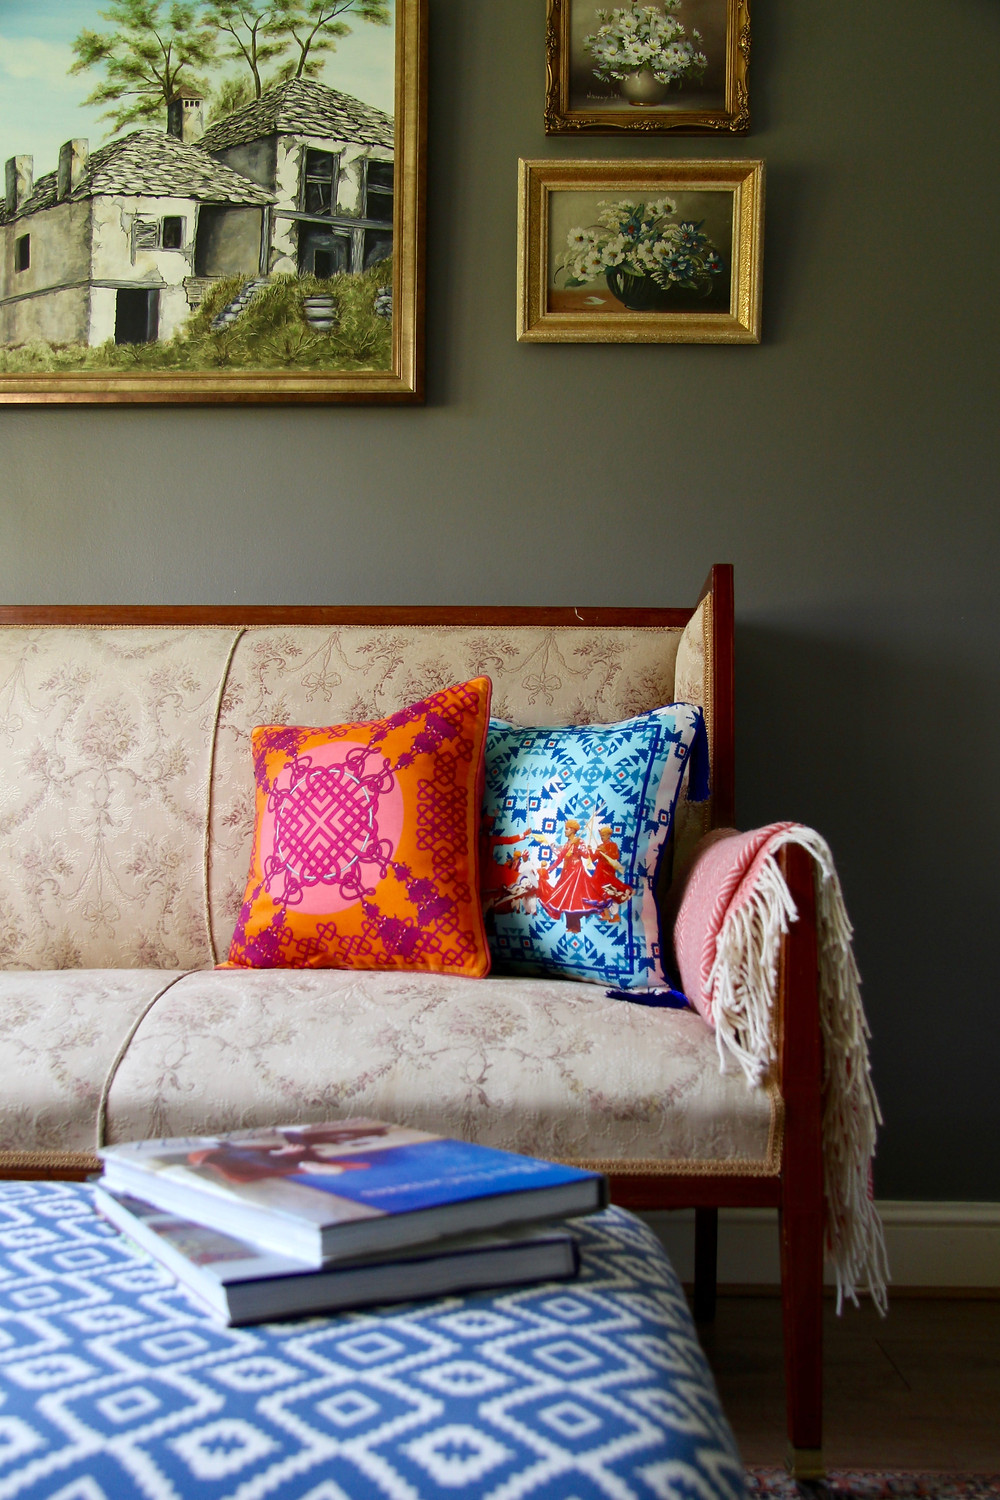 Silk twill blue and pink orange cushions by Bivain on a traditional settee against a grey Farrow and Ball Moles Breath wall with oil paintings and a blue footstool